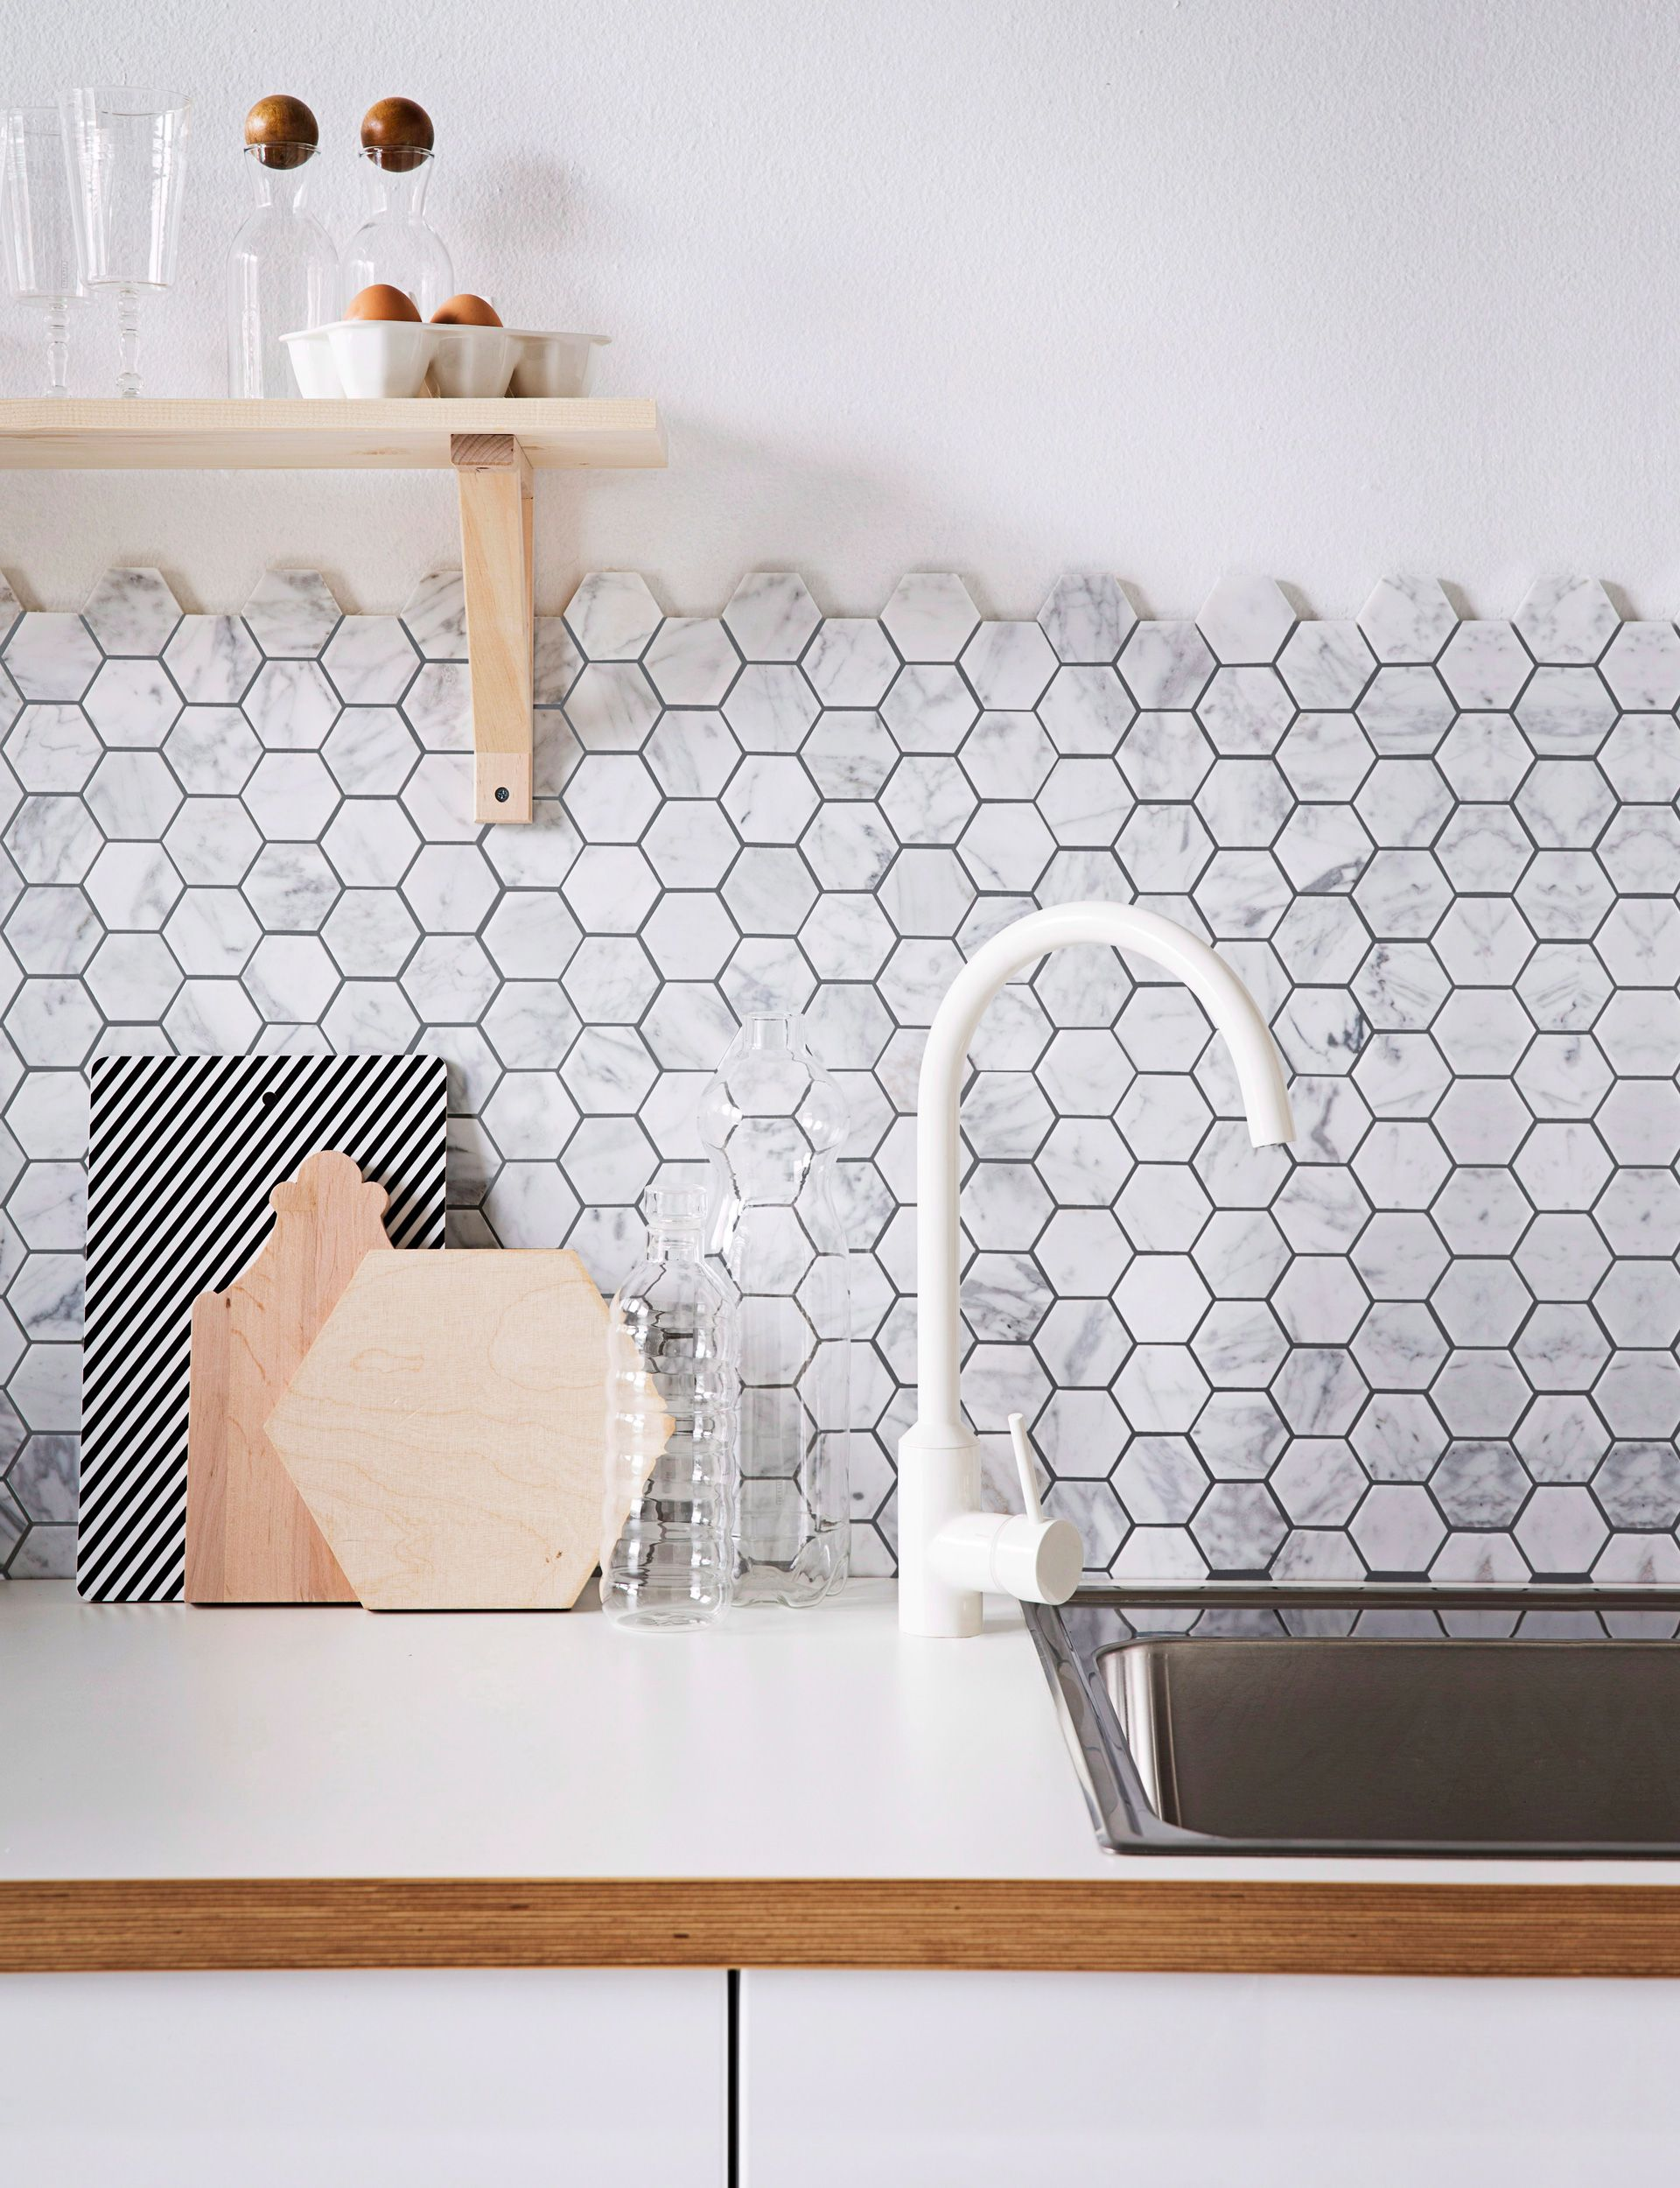 How To Choose The Right Tiles For Your Interior   Homes To Love